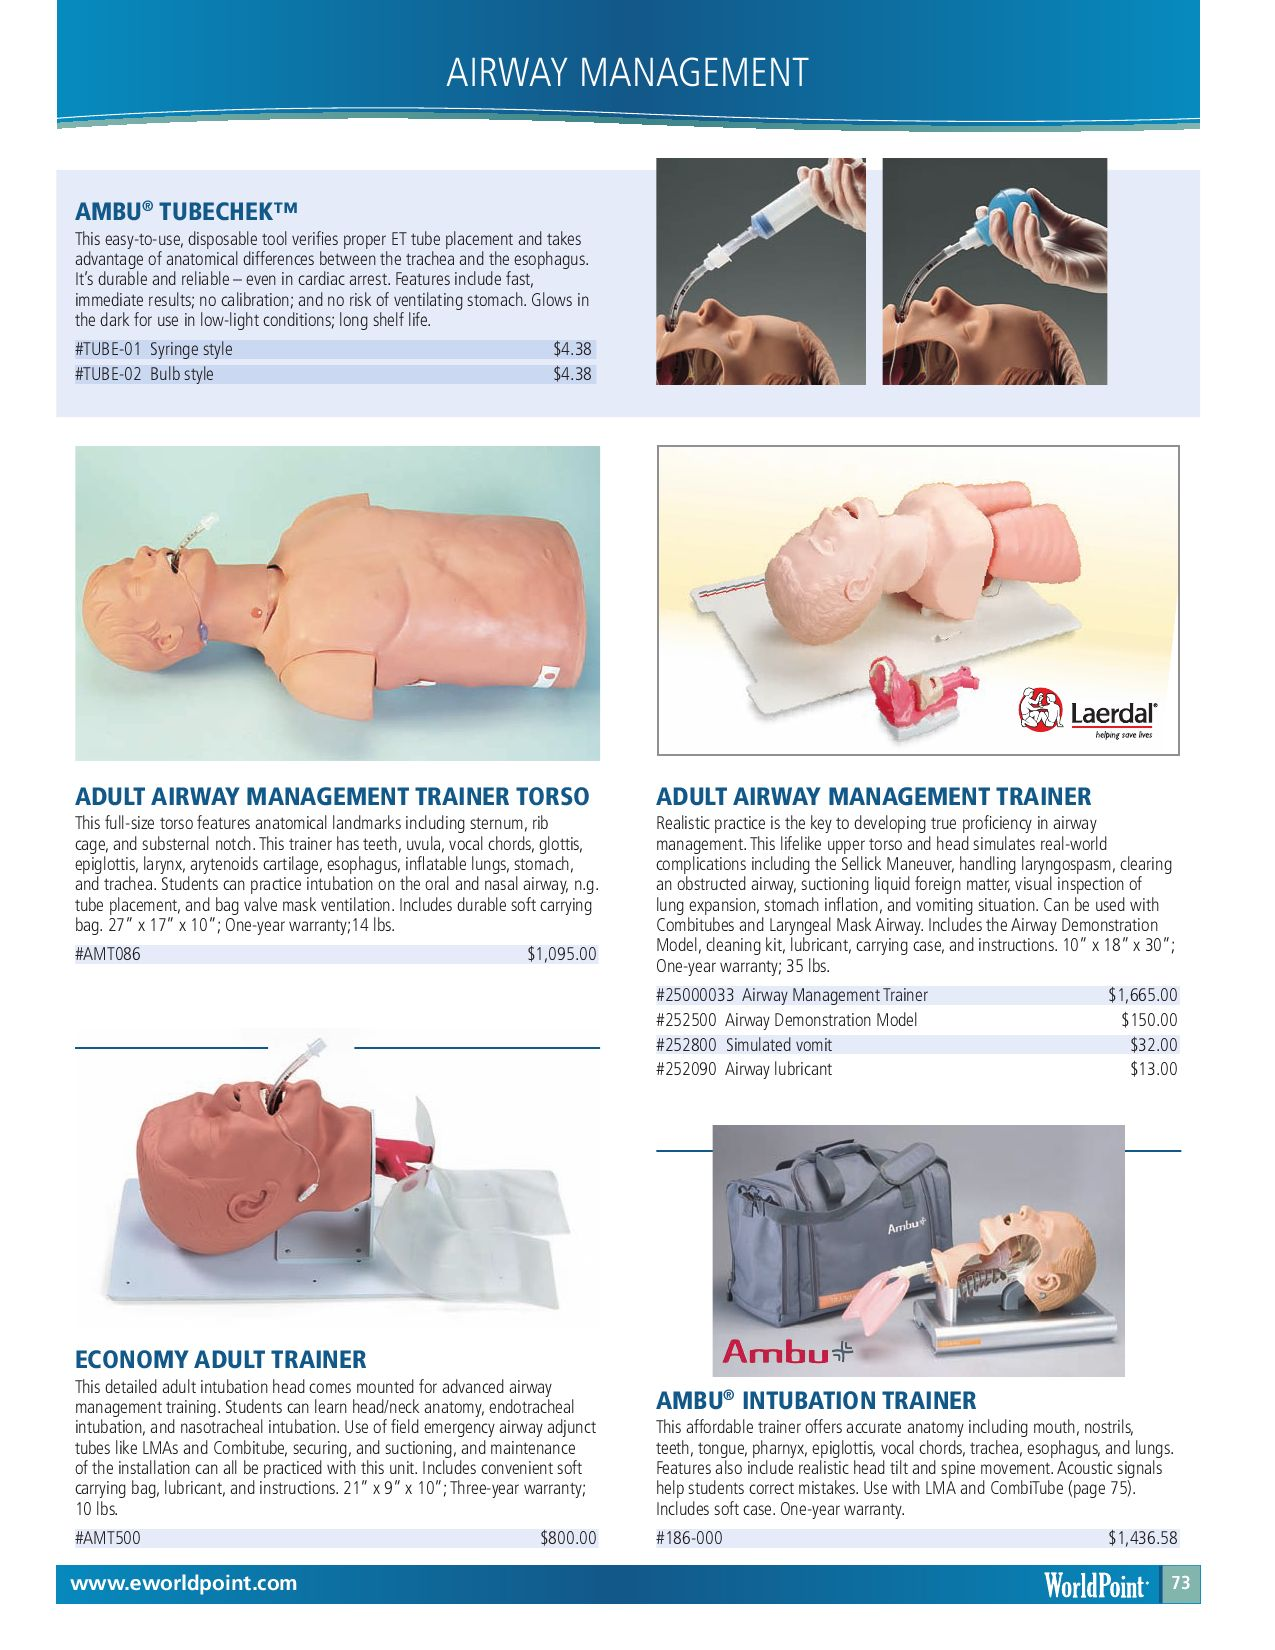 Famous Anatomy Of Airway For Intubation Frieze - Human Anatomy ...